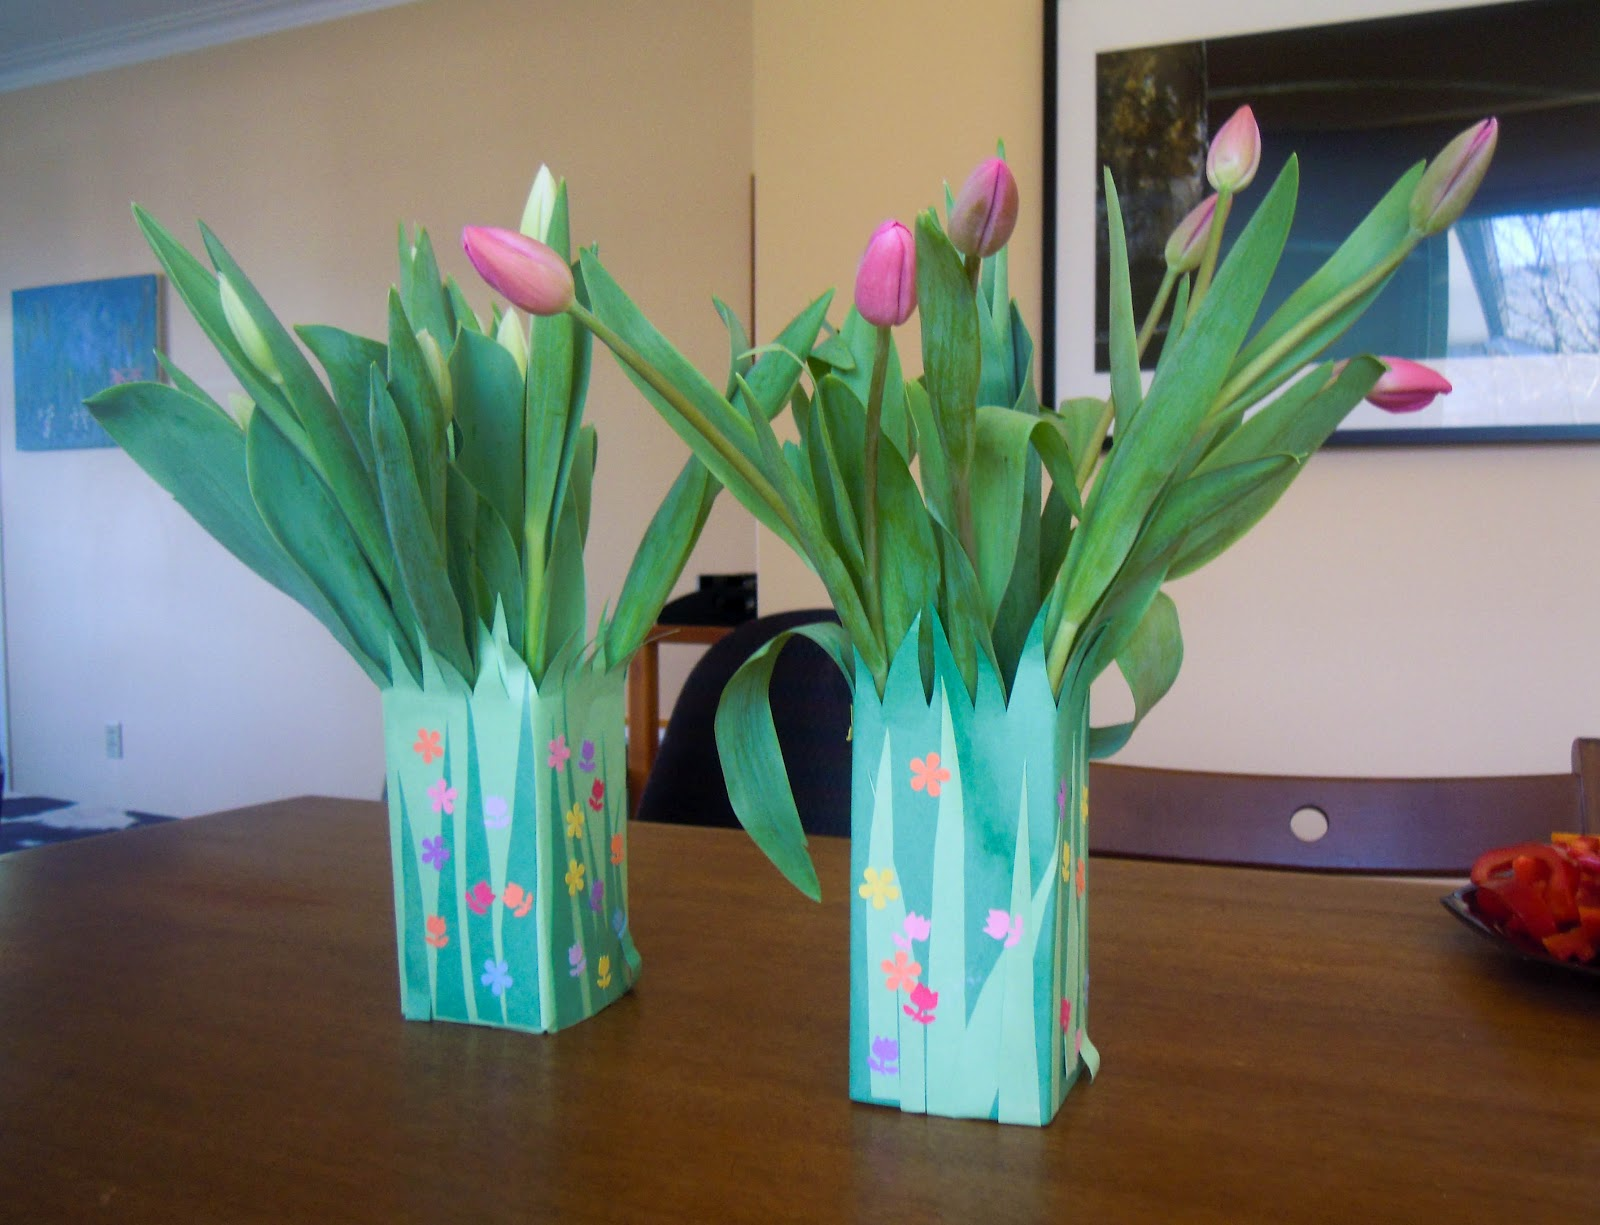 How To Make A Spring Vase From A Milk Carton Vone Inspired